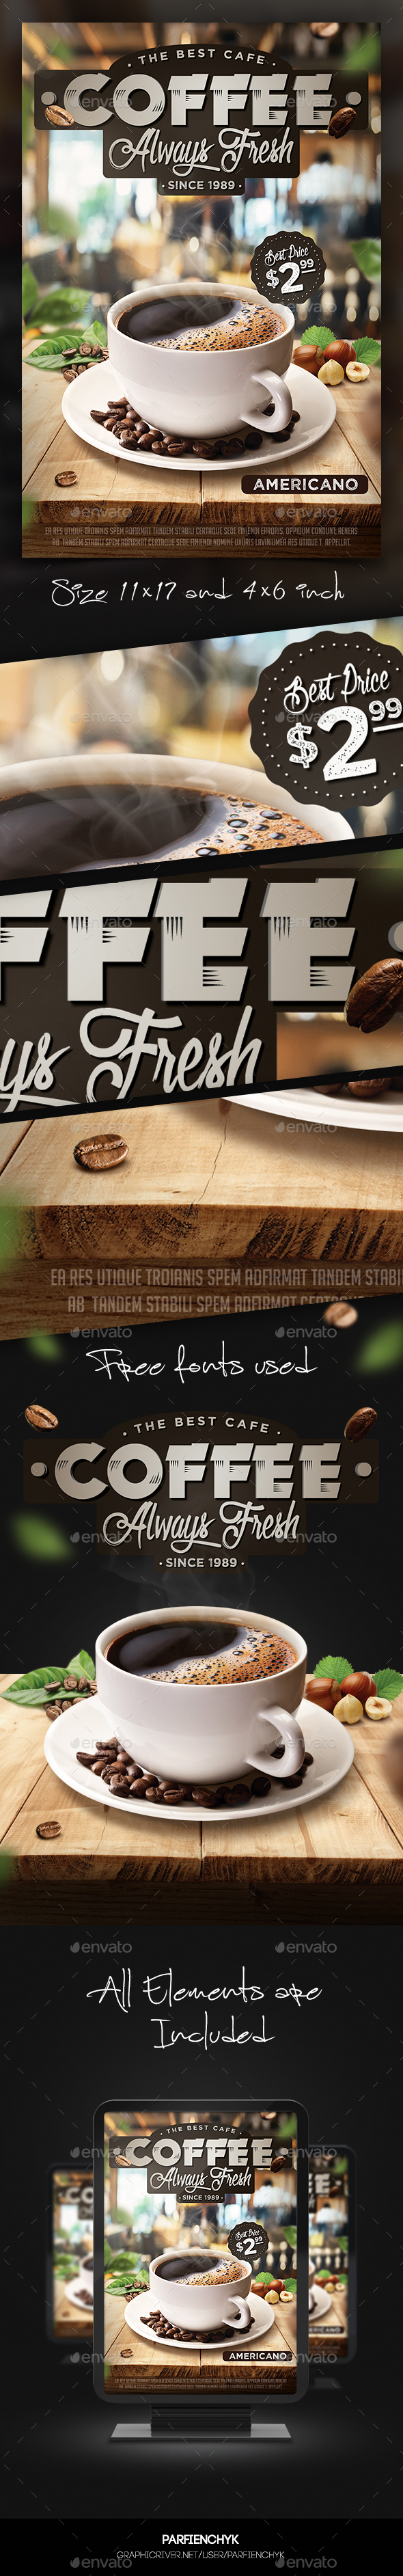 Coffee Flyer Template - Restaurant Flyers